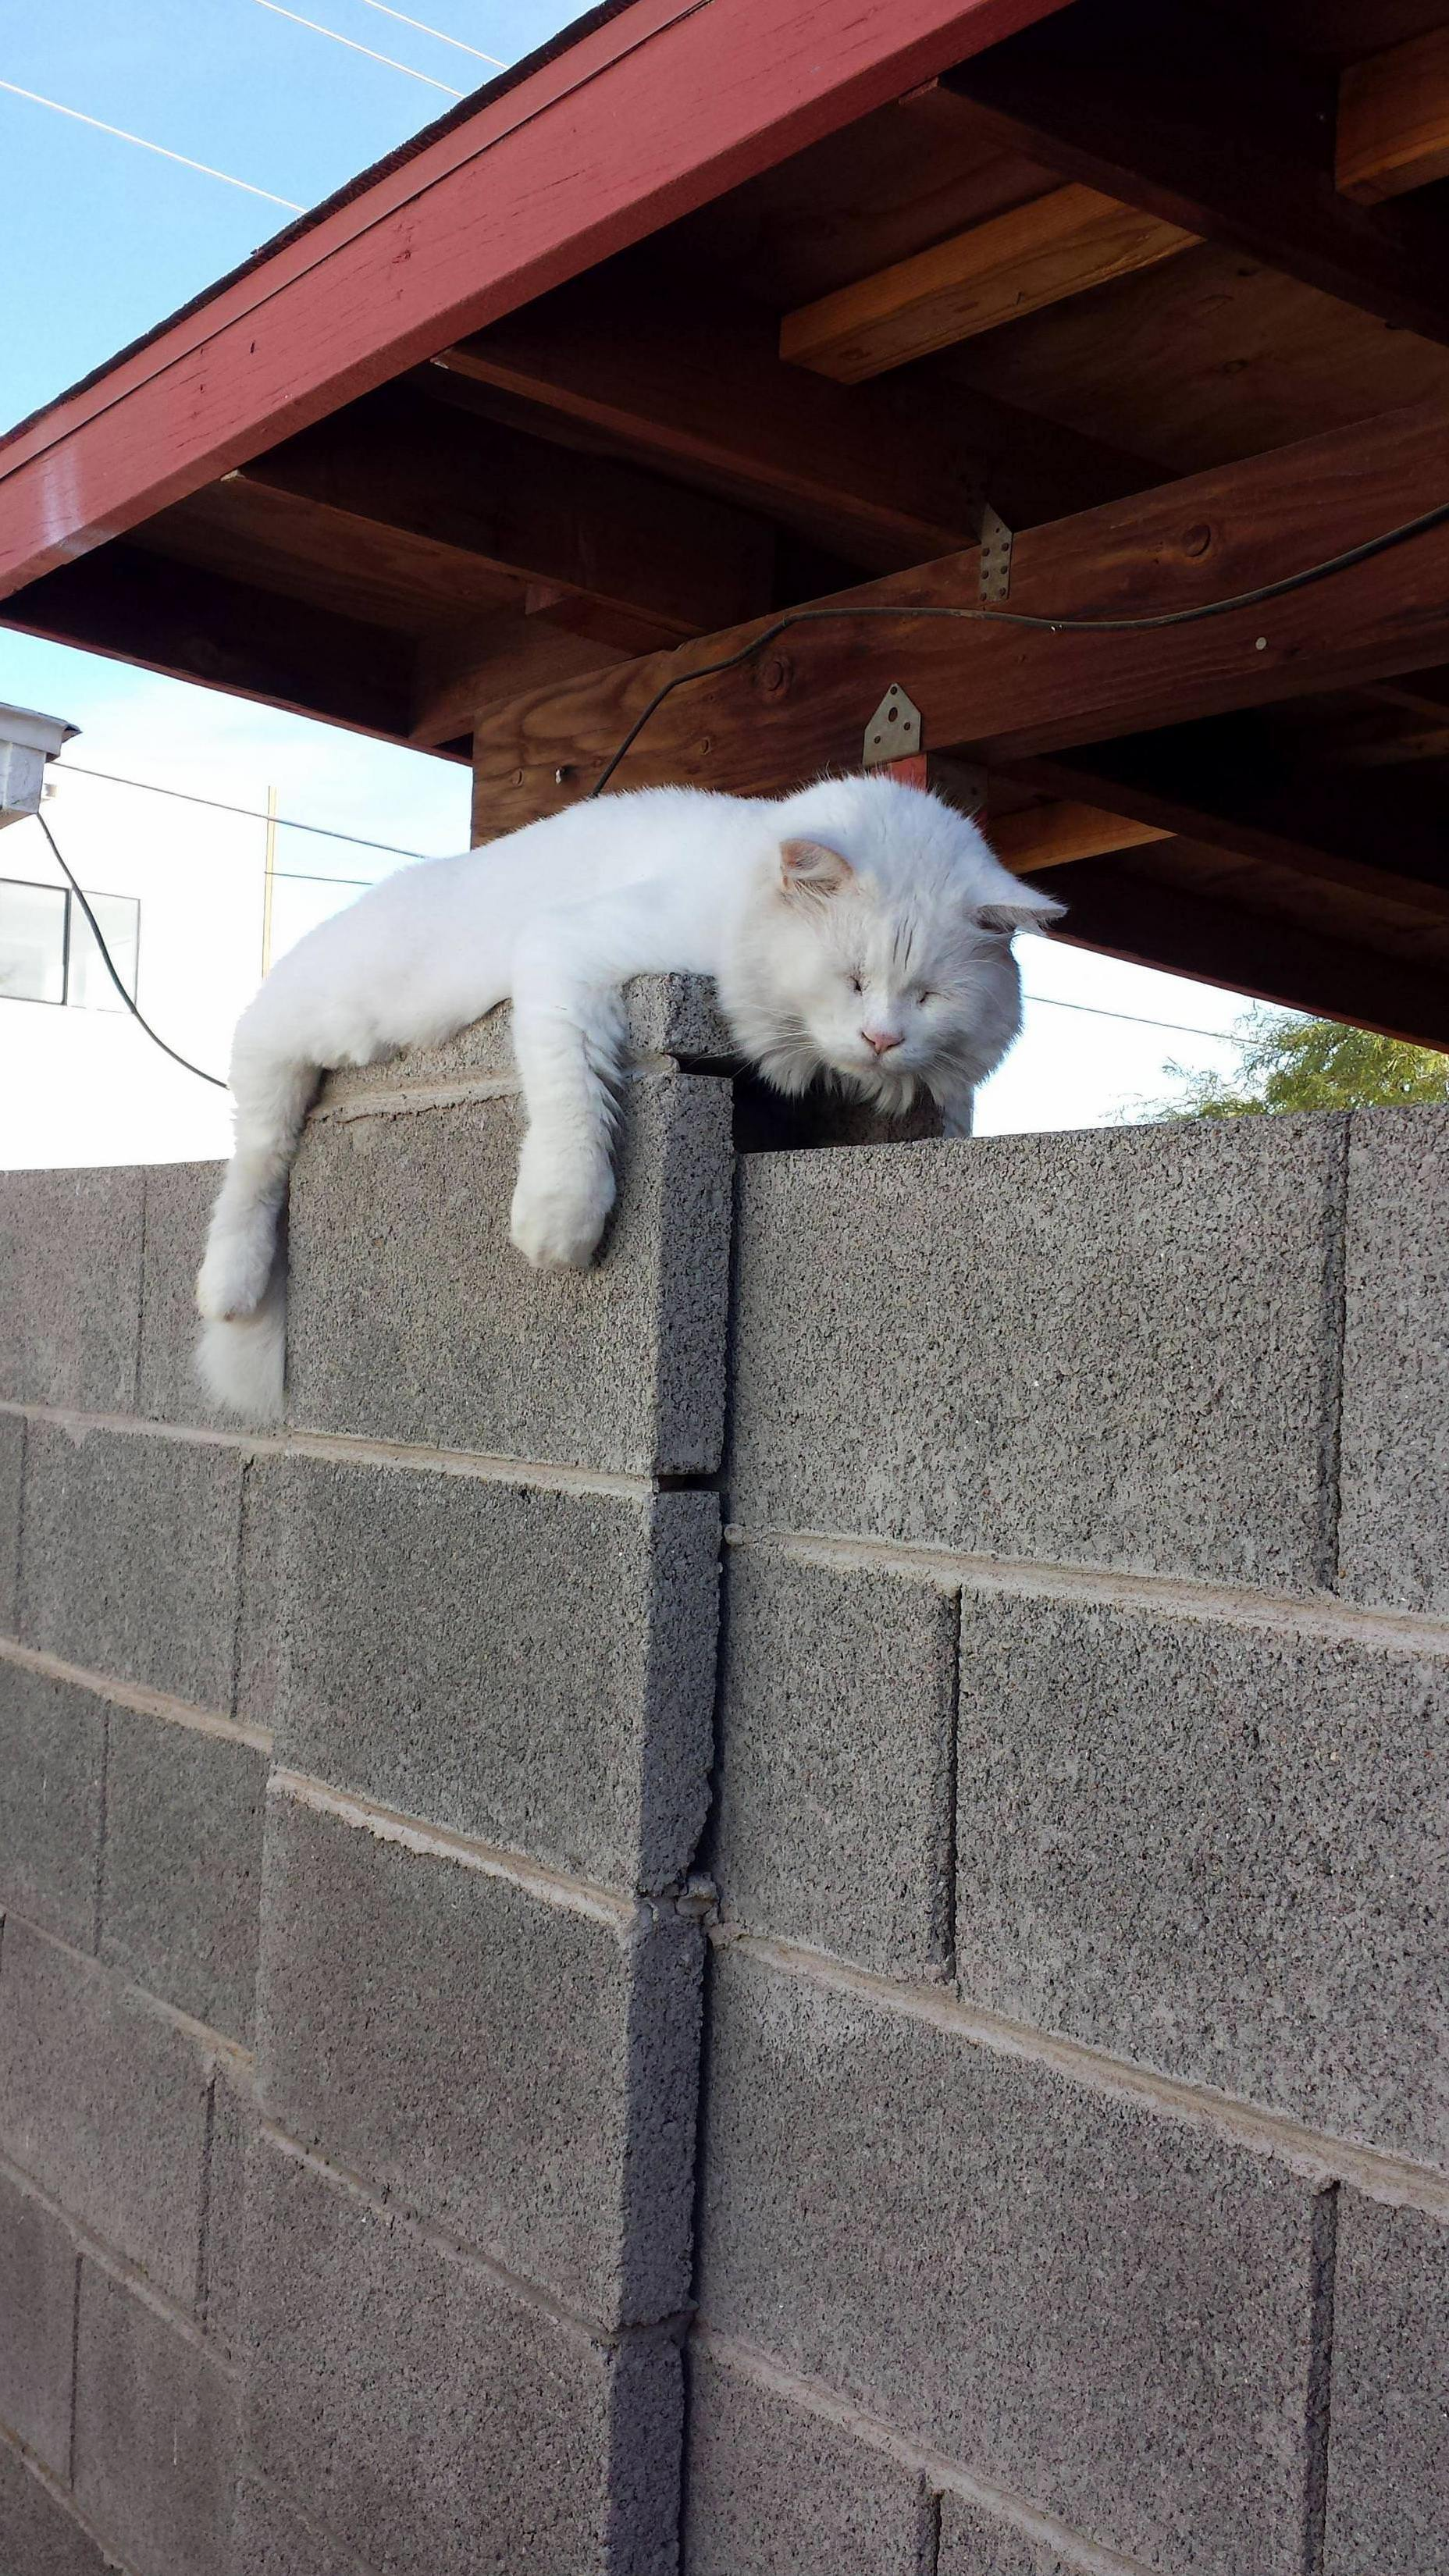 Found my kitty spilled on the wall